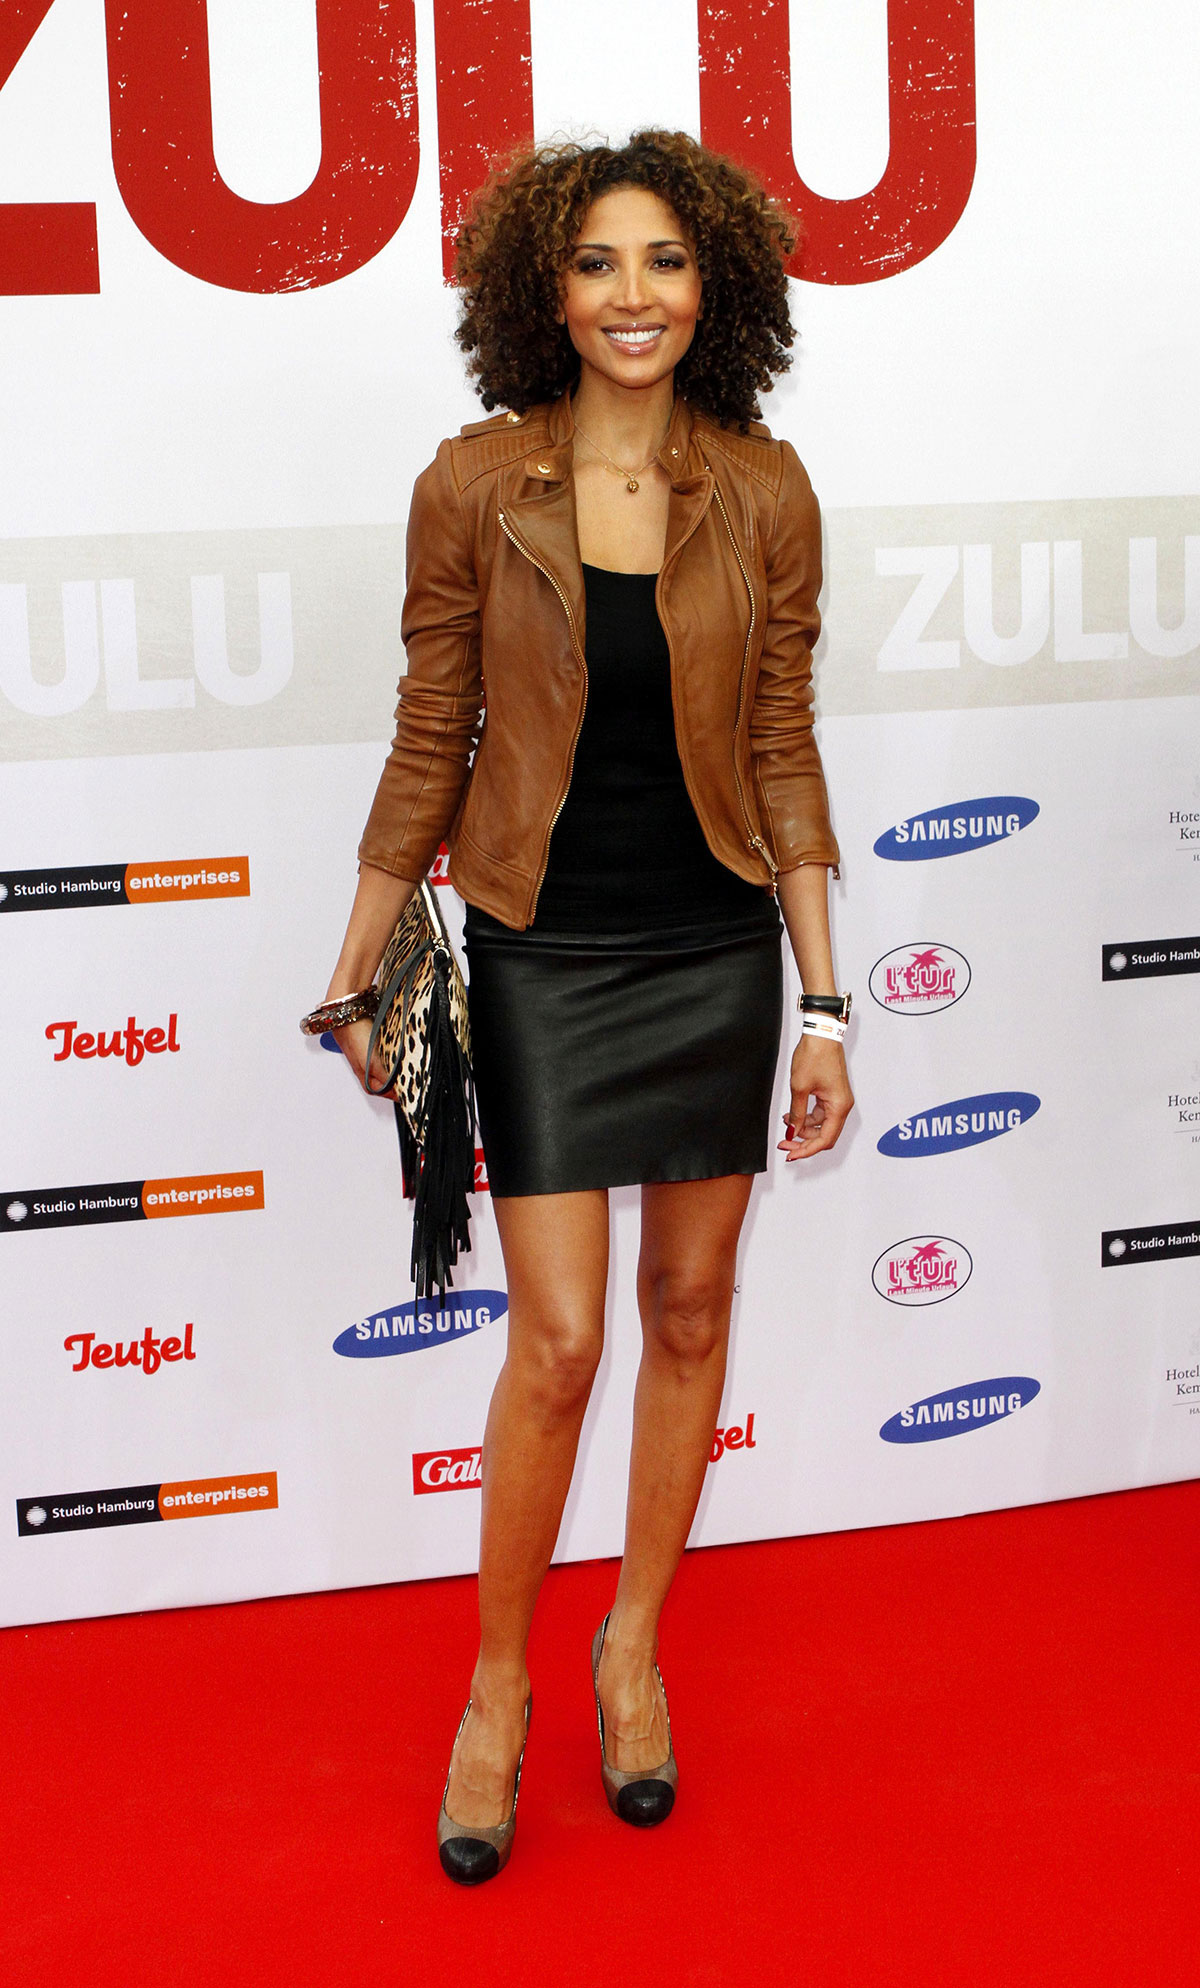 German celebs at various events